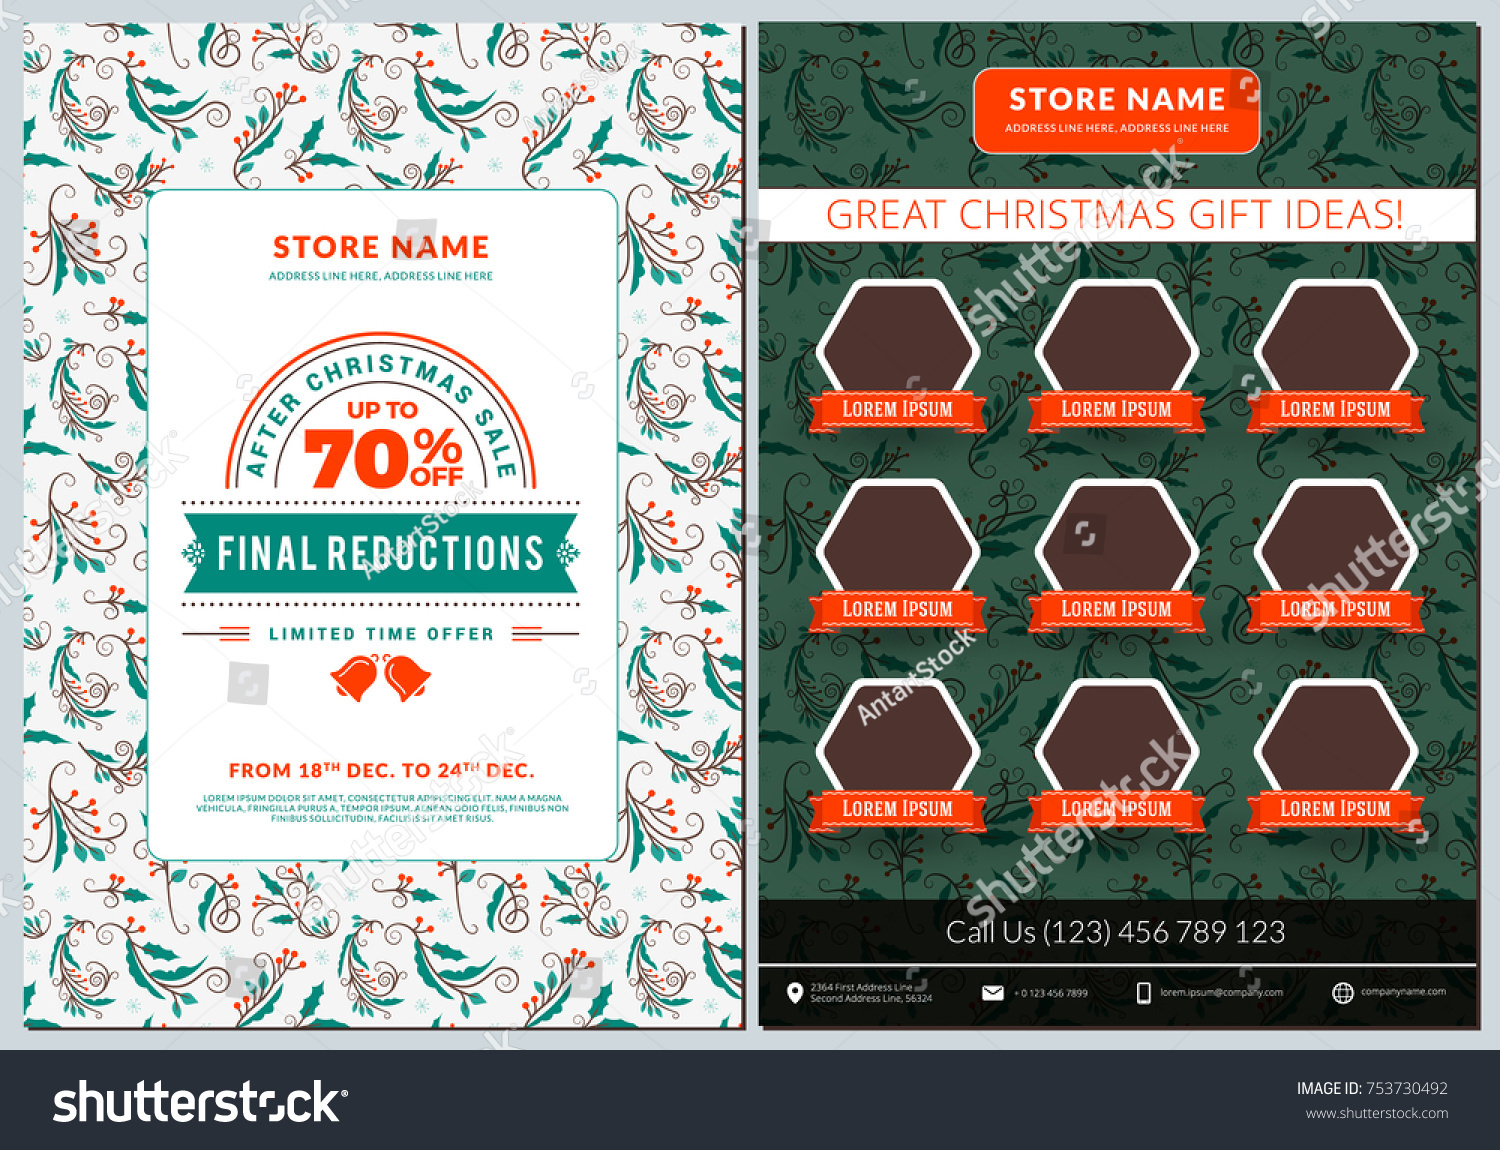 Business Flyer Template. Vintage Badge With Winter Background